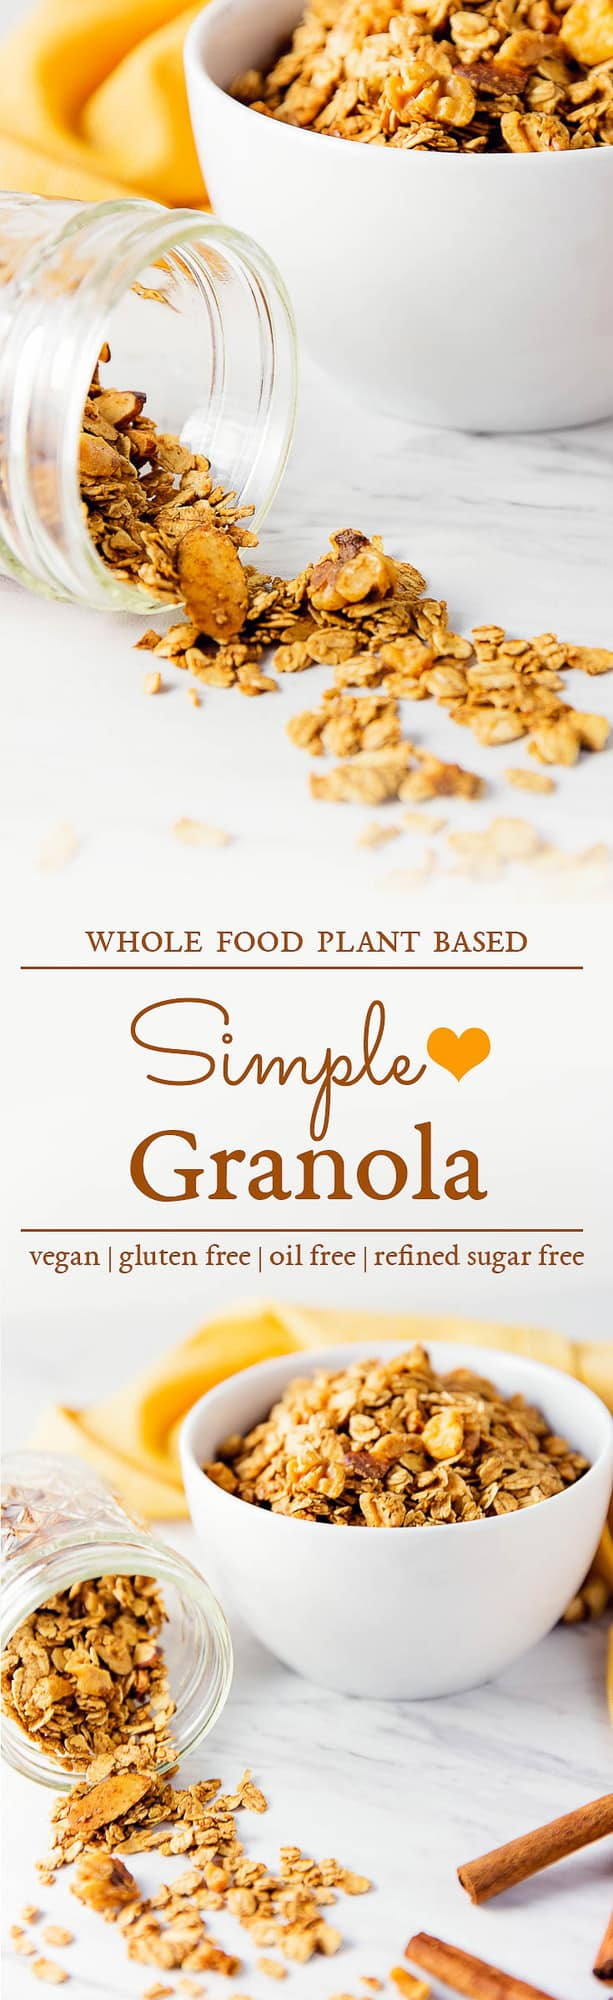 simple granola, granola, granola parfait, simple parfait, blueberry parfait, maple berry parfait, blueberries, berries, banana, parfait, recipe, vegan, vegetarian, whole food plant based, oil free, no oil, refined sugar free, no refined sugar, breakfast, dessert, simple, east, fast, 30 minutes, healthy, vegan parfait, whole food plant based parfait, whole food plant based recipe, whole food plant based granola, whole food plant based breakfast, gluten free, gluten free recipe, gluten free breakfast, granola, almonds, walnuts, maple syrup, cinnamon, oats, minimally processed, meals, unprocessed, healthy granola, oil free granola, dairy free